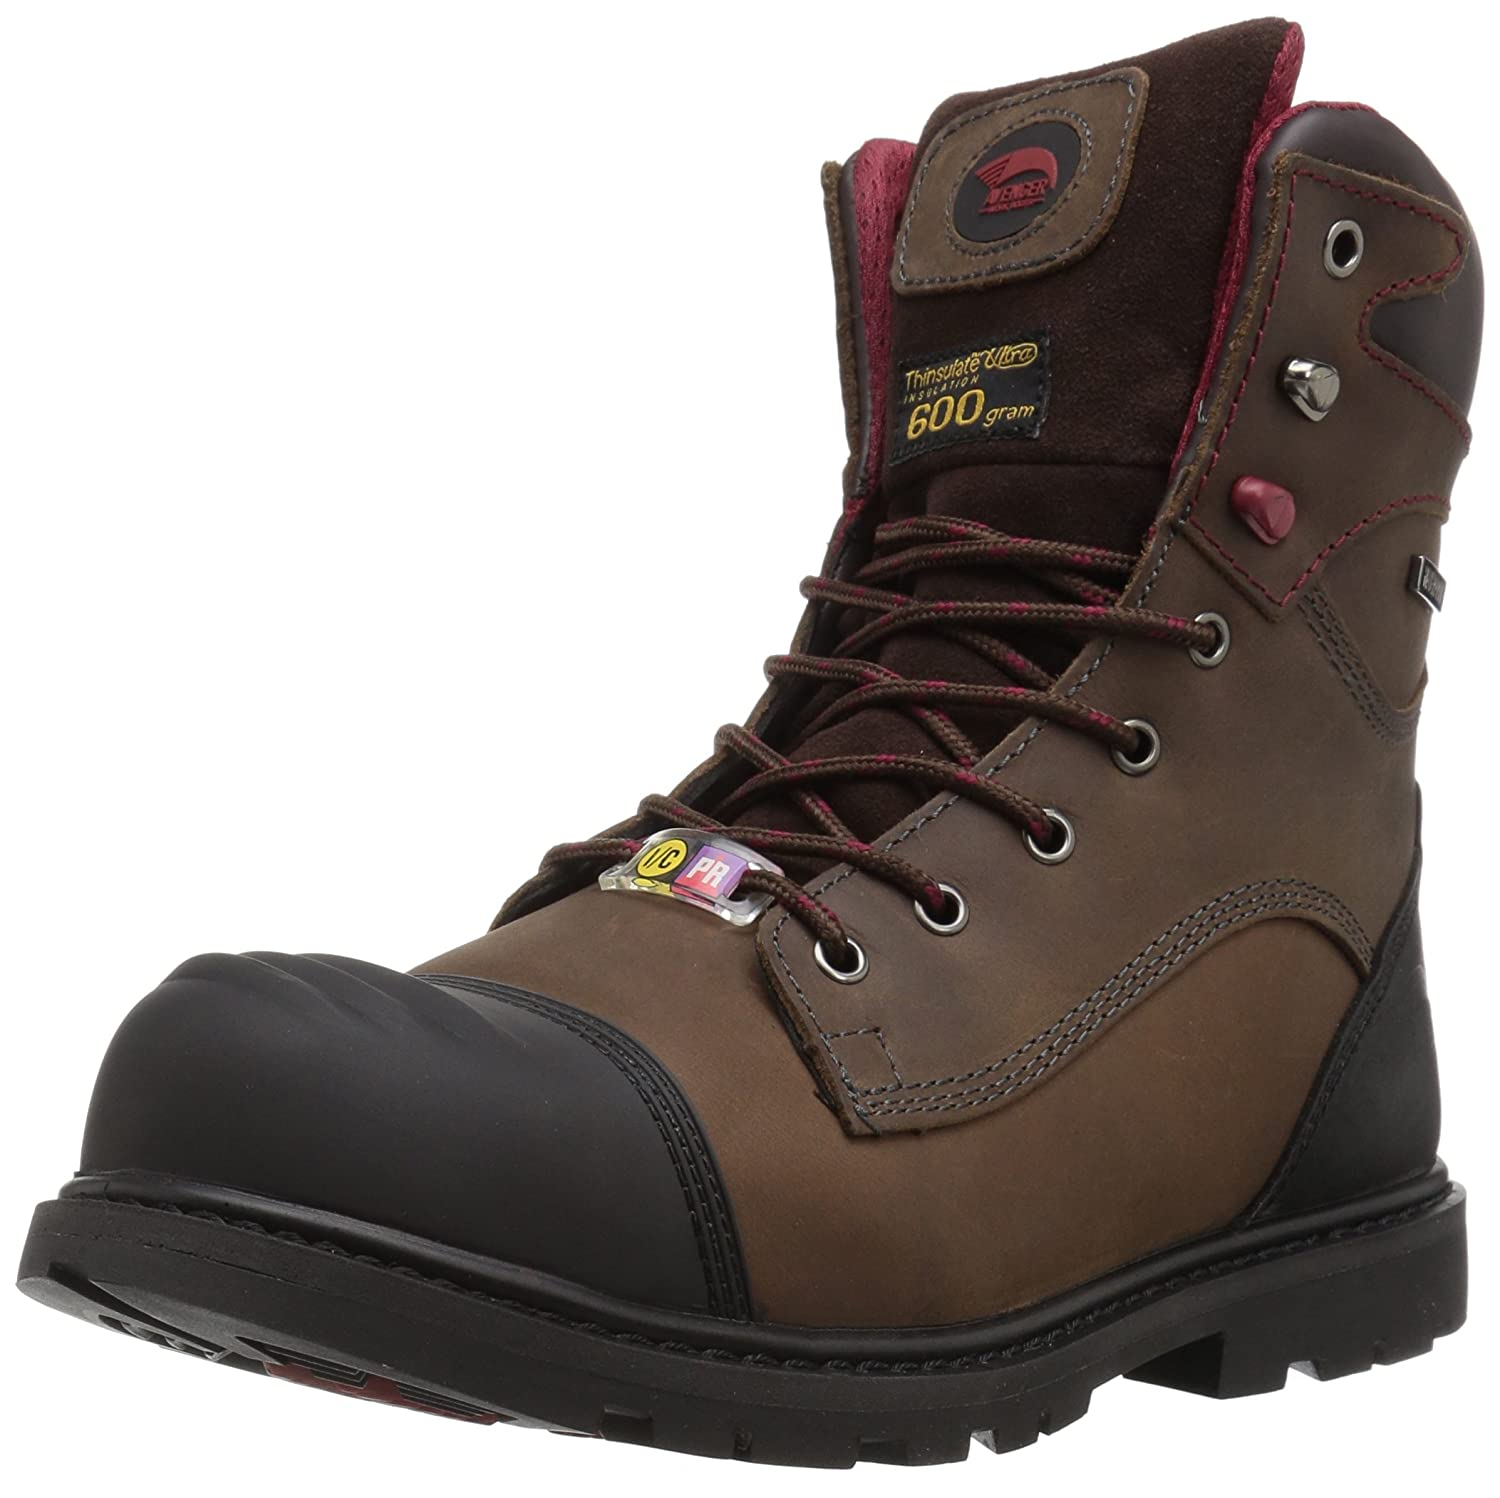 Avenger Safety Footwearメンズ7573断熱防水Comp Toe Puncture Resistant EH Work Boot工業と建設Shoe ブラウン 9.5 D(M) US 9.5 D(M) USブラウン B01781VQTM